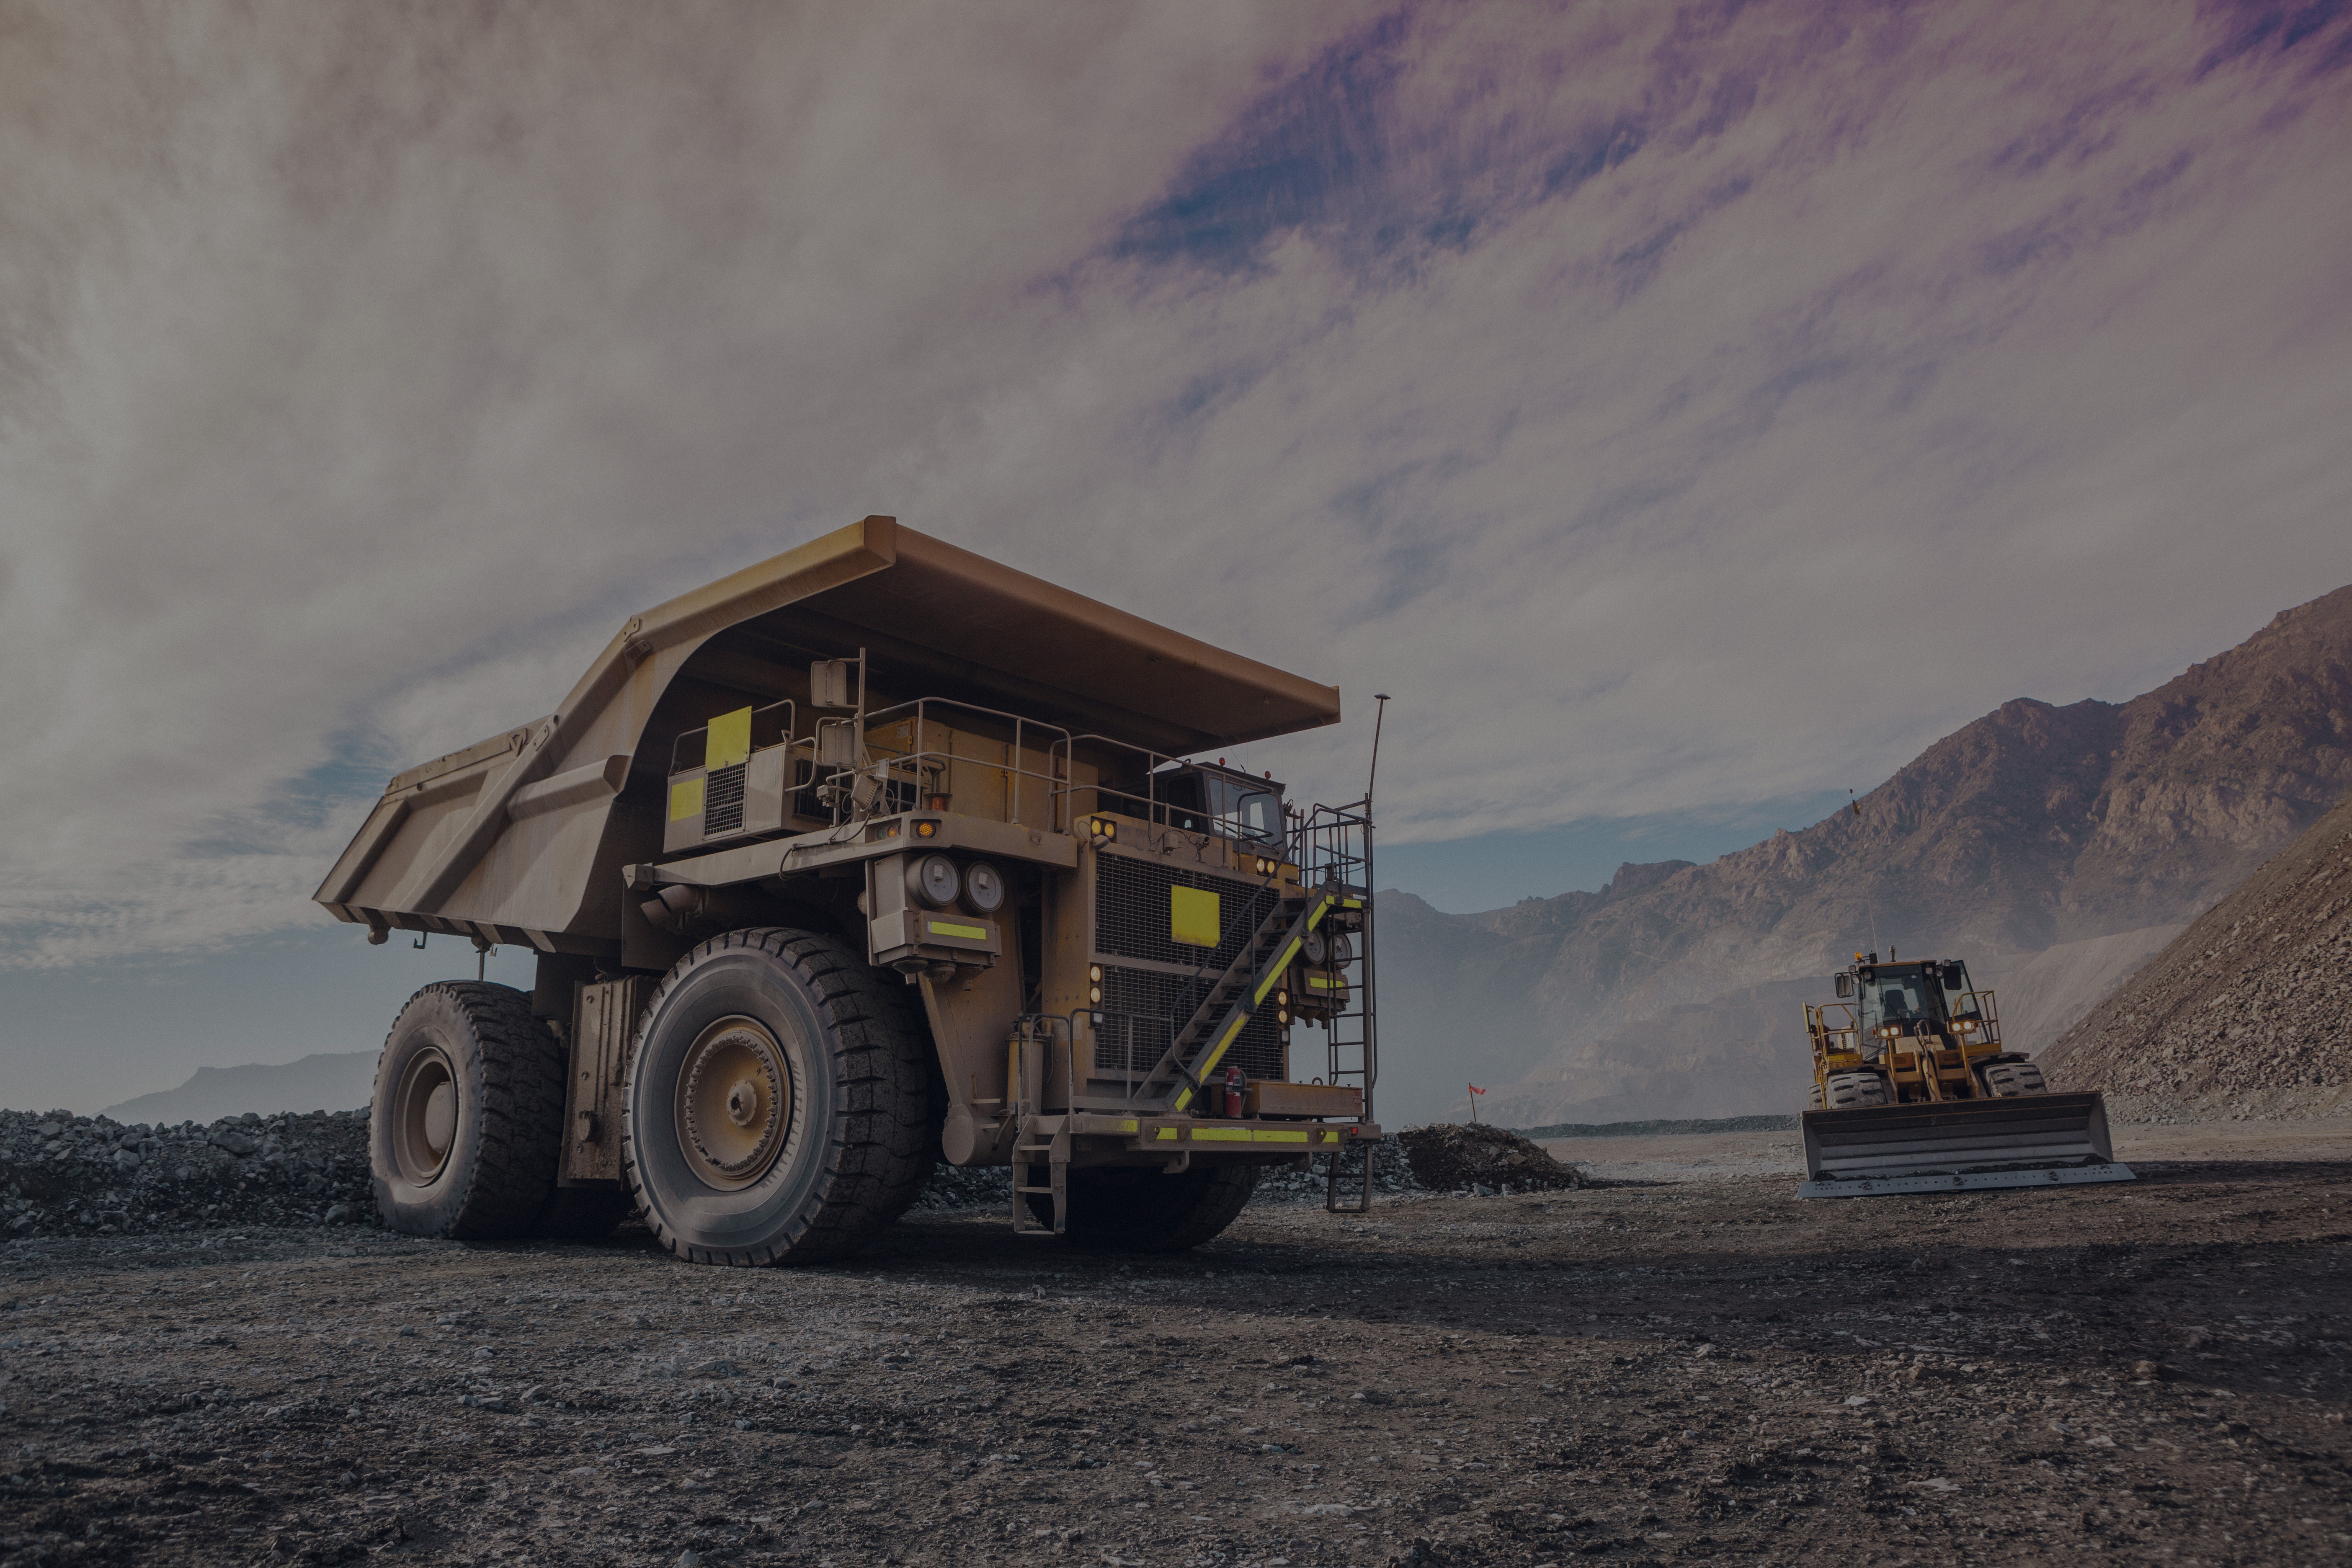 Pickles acquire specialist mining auction house Hassalls